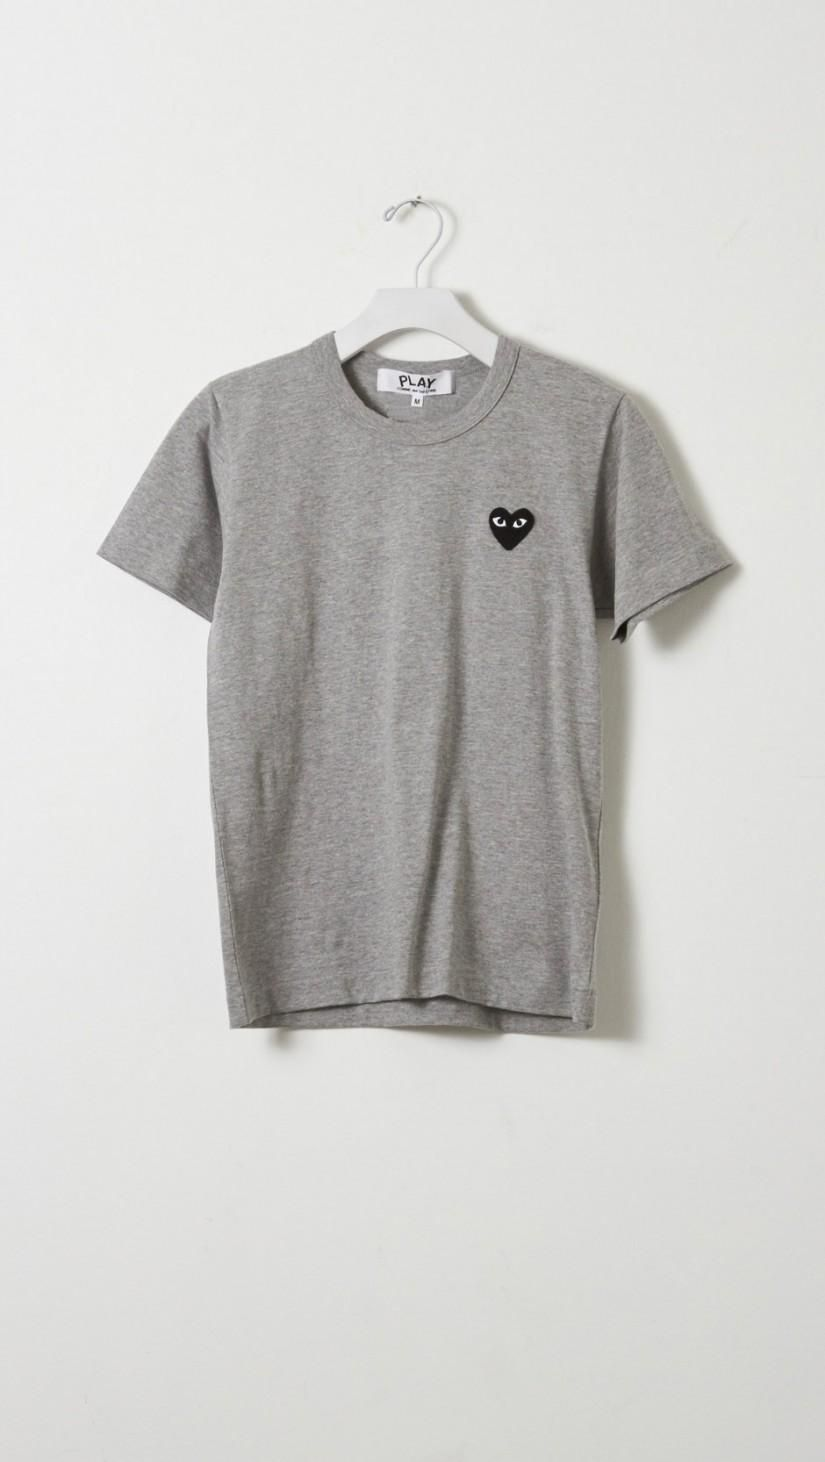 Play Comme Des Garcons Emblem Tee In Grey W Black Clothes Fashion Cdg Shirt